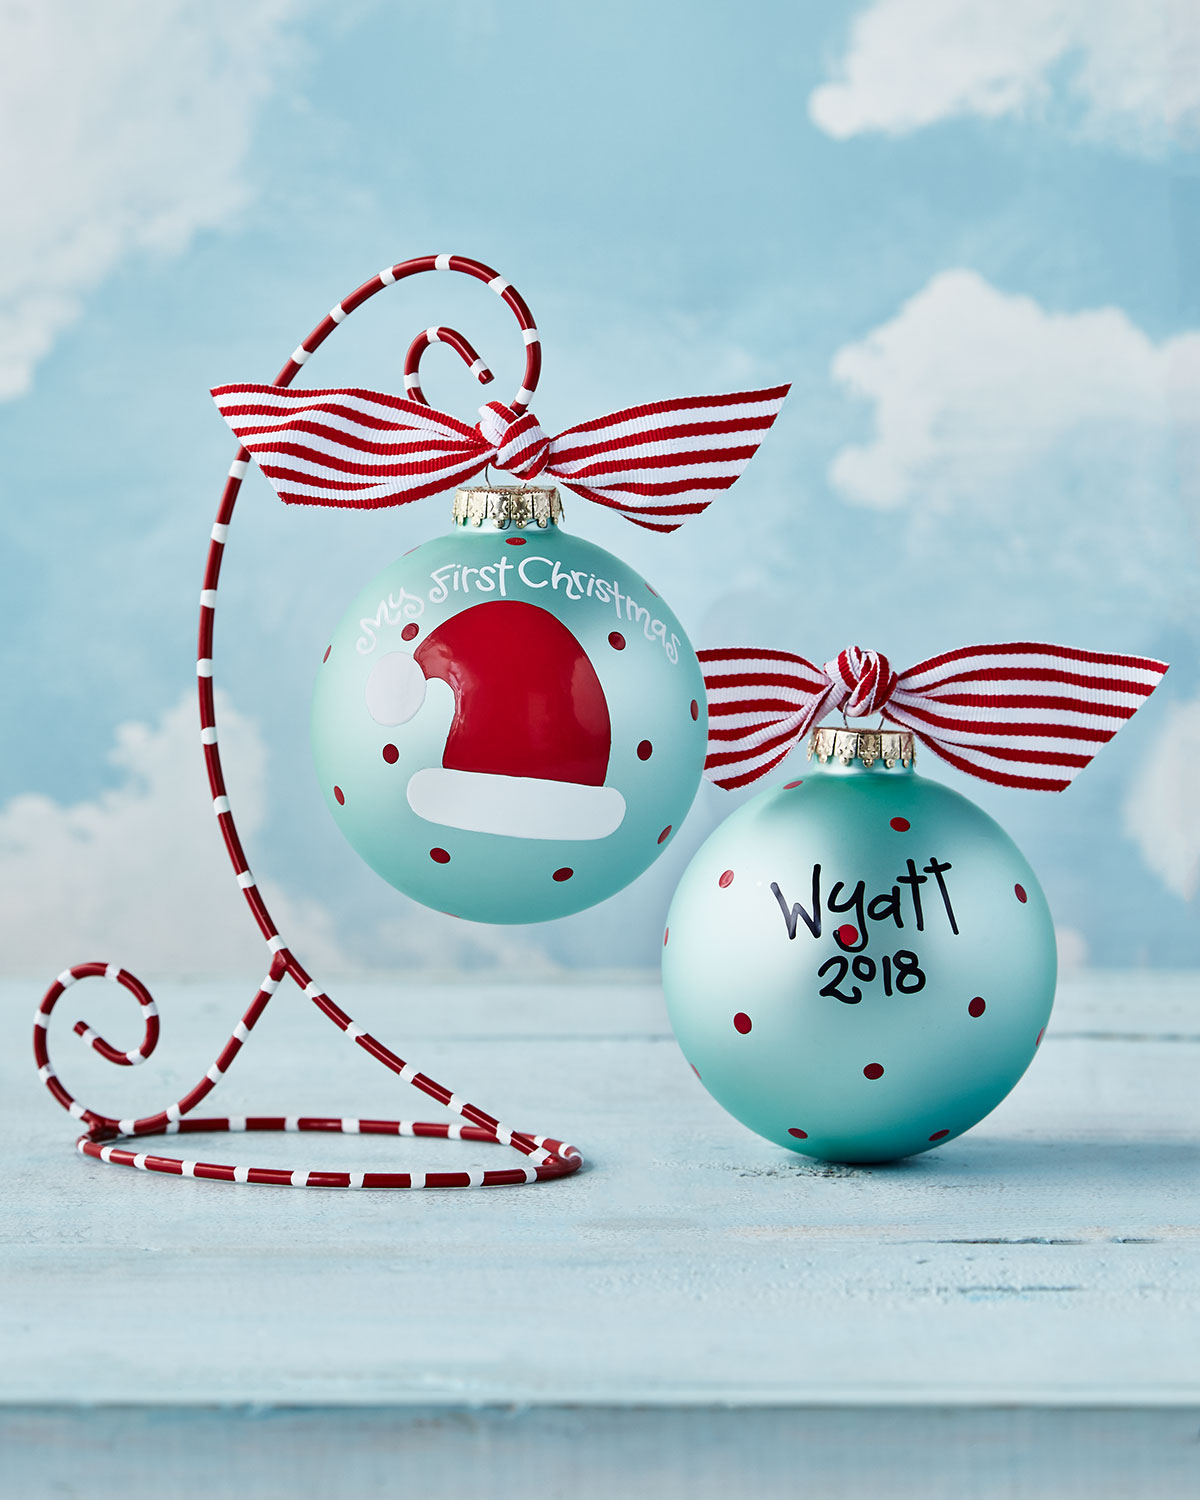 My First Christmas Santa Hat Glass Ornament with Stand, Boy